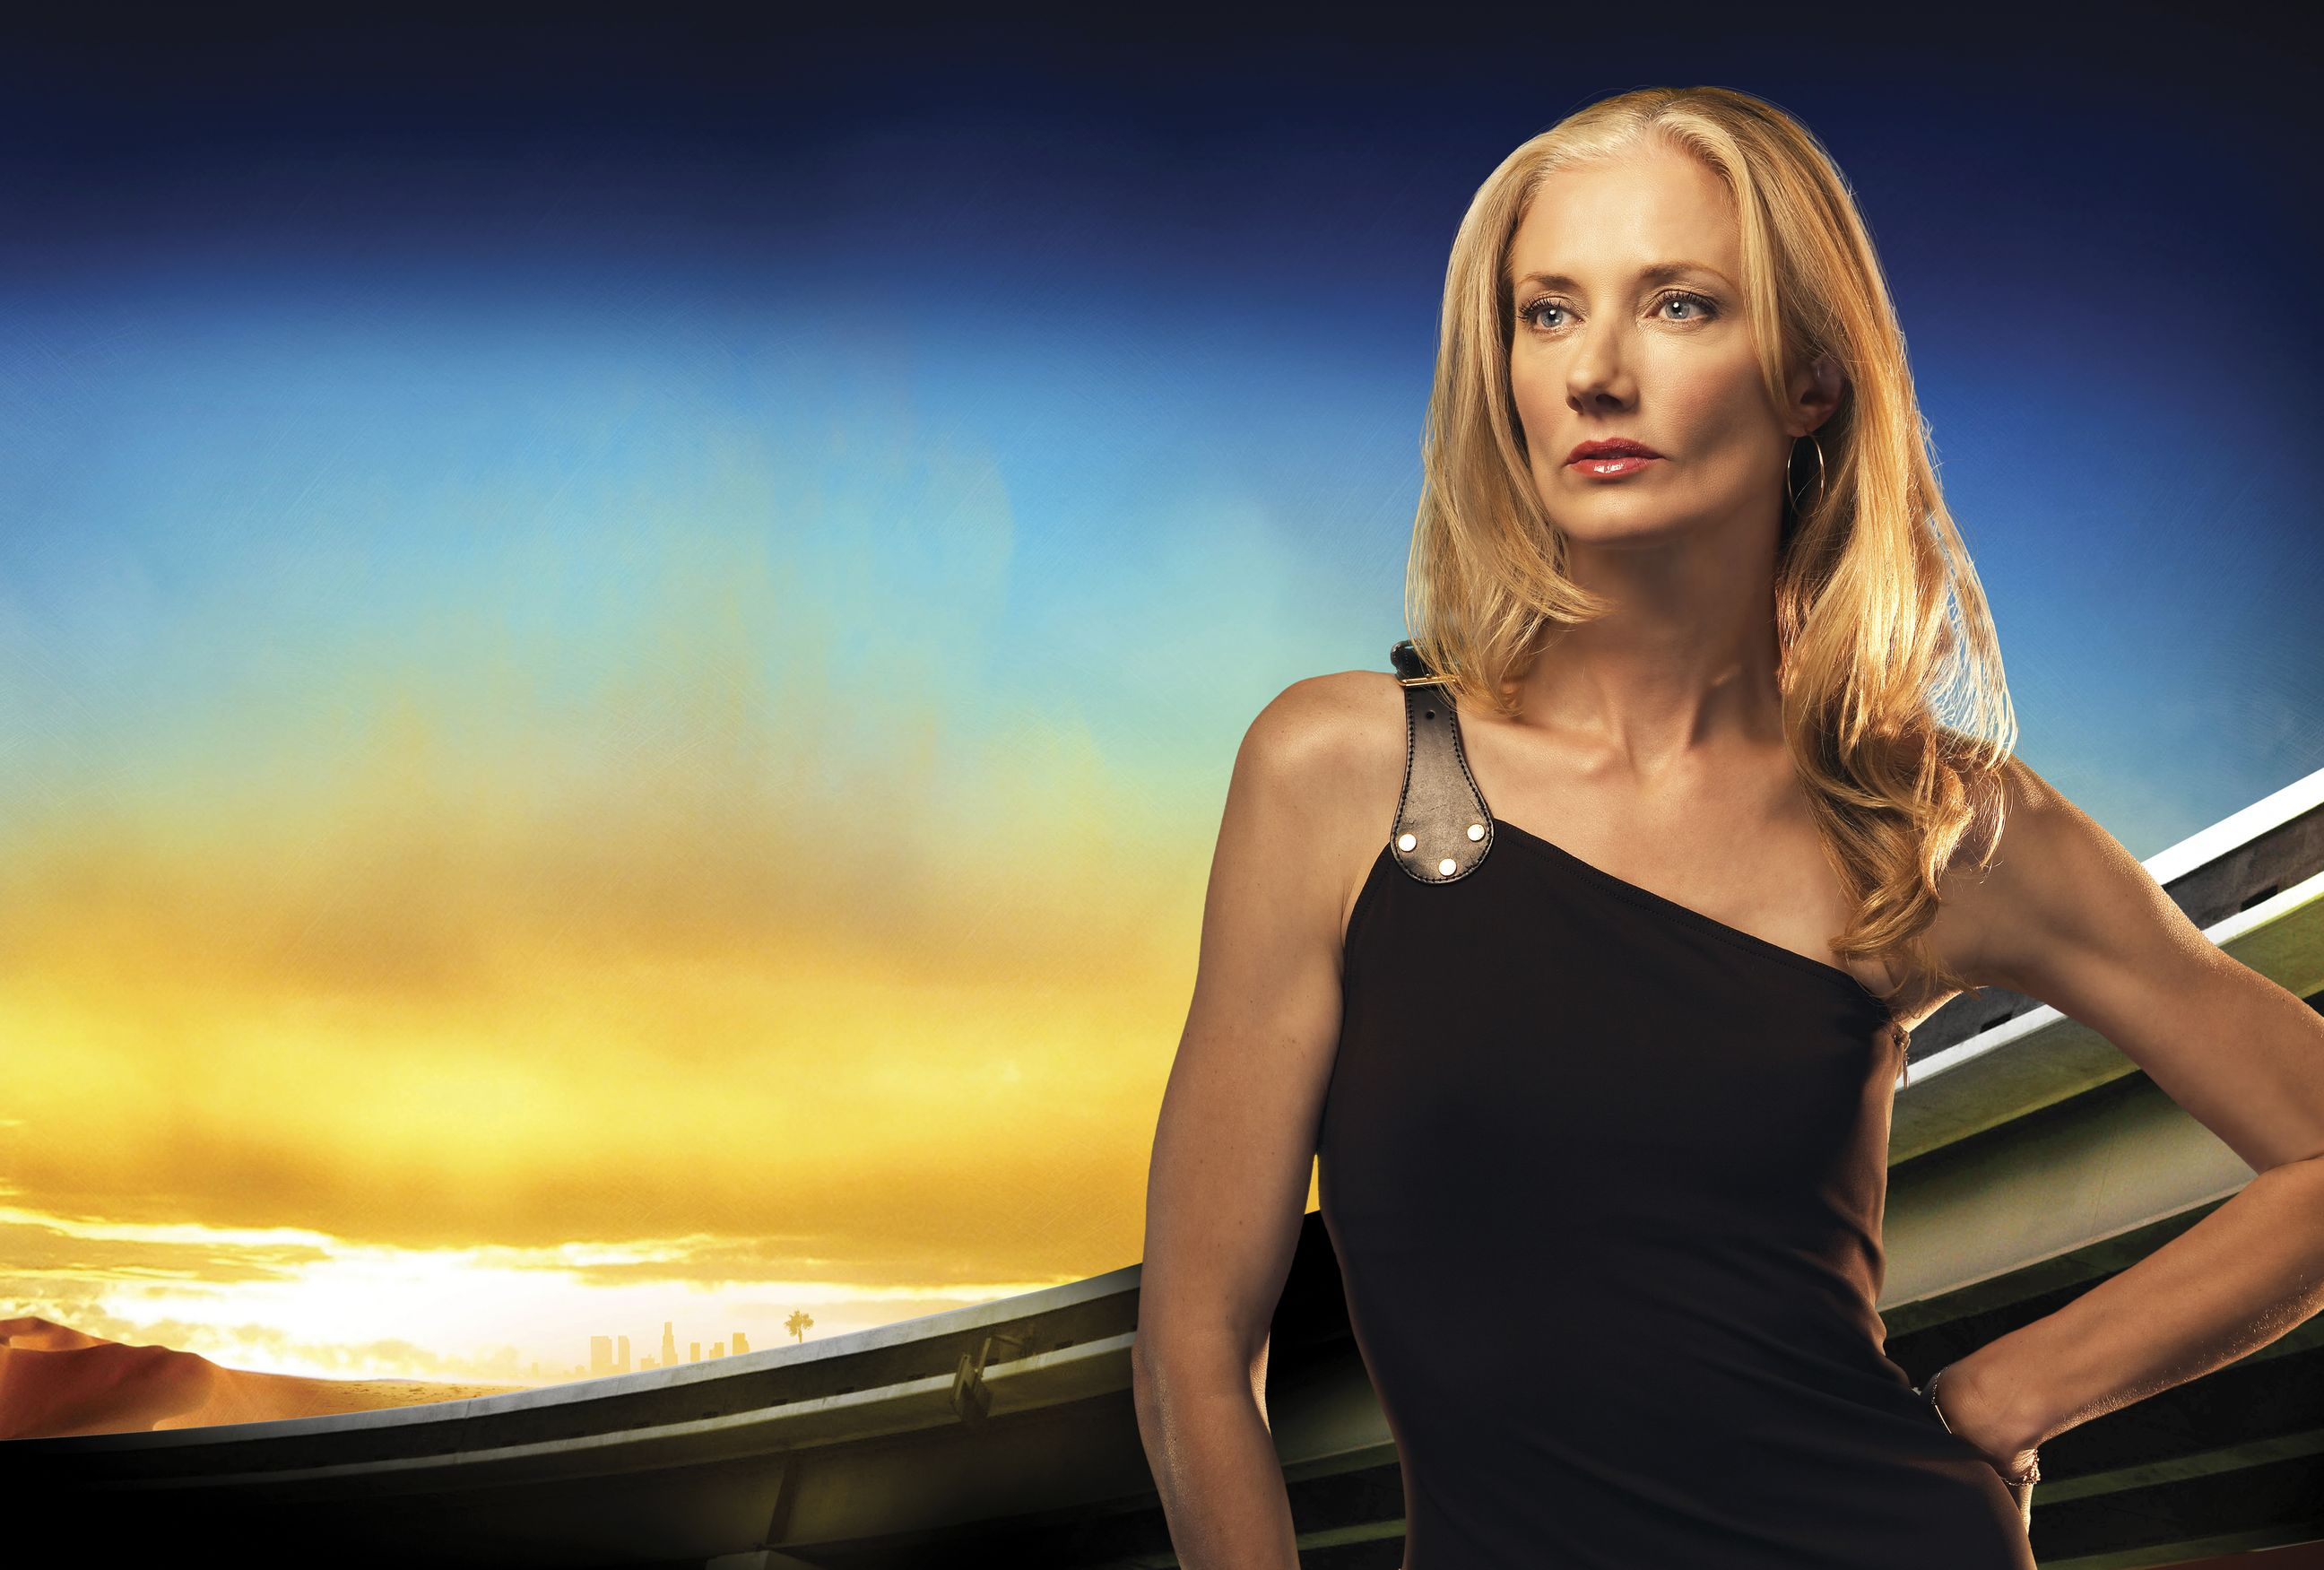 American actress joely richardson photos